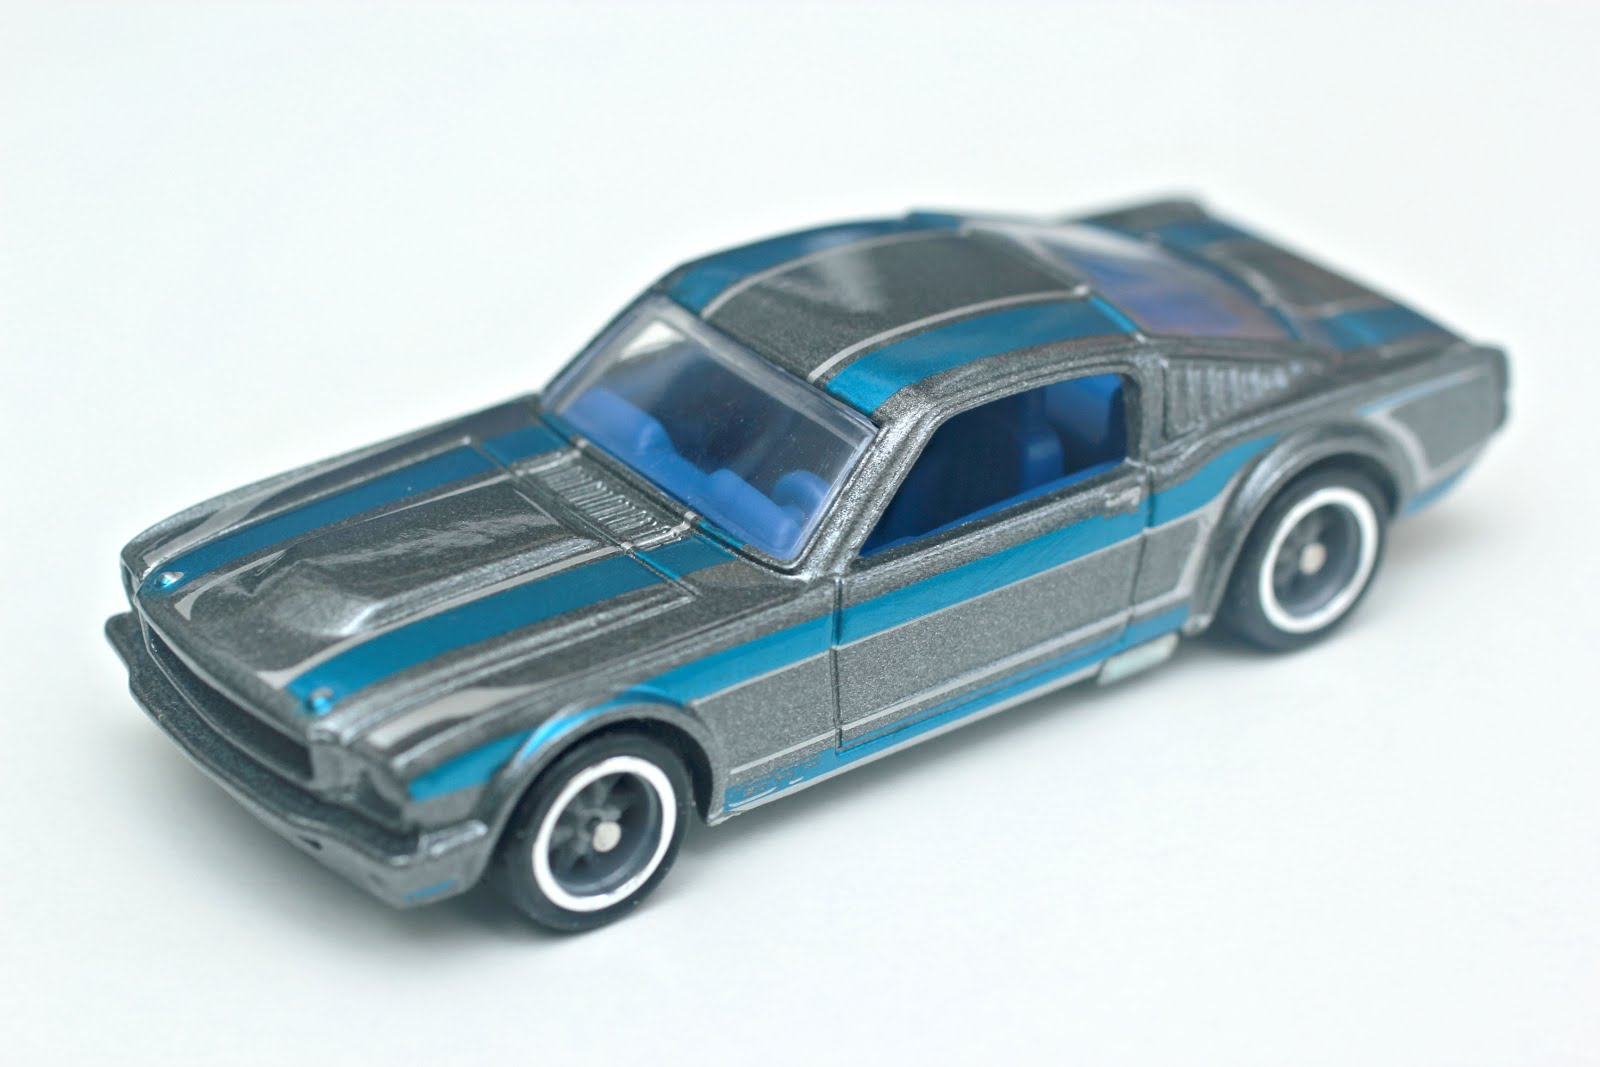 The model shown here is hot wheels 1965 mustang fastback which is also if im not mistaken won the tiffany gold medal award for excellence in american